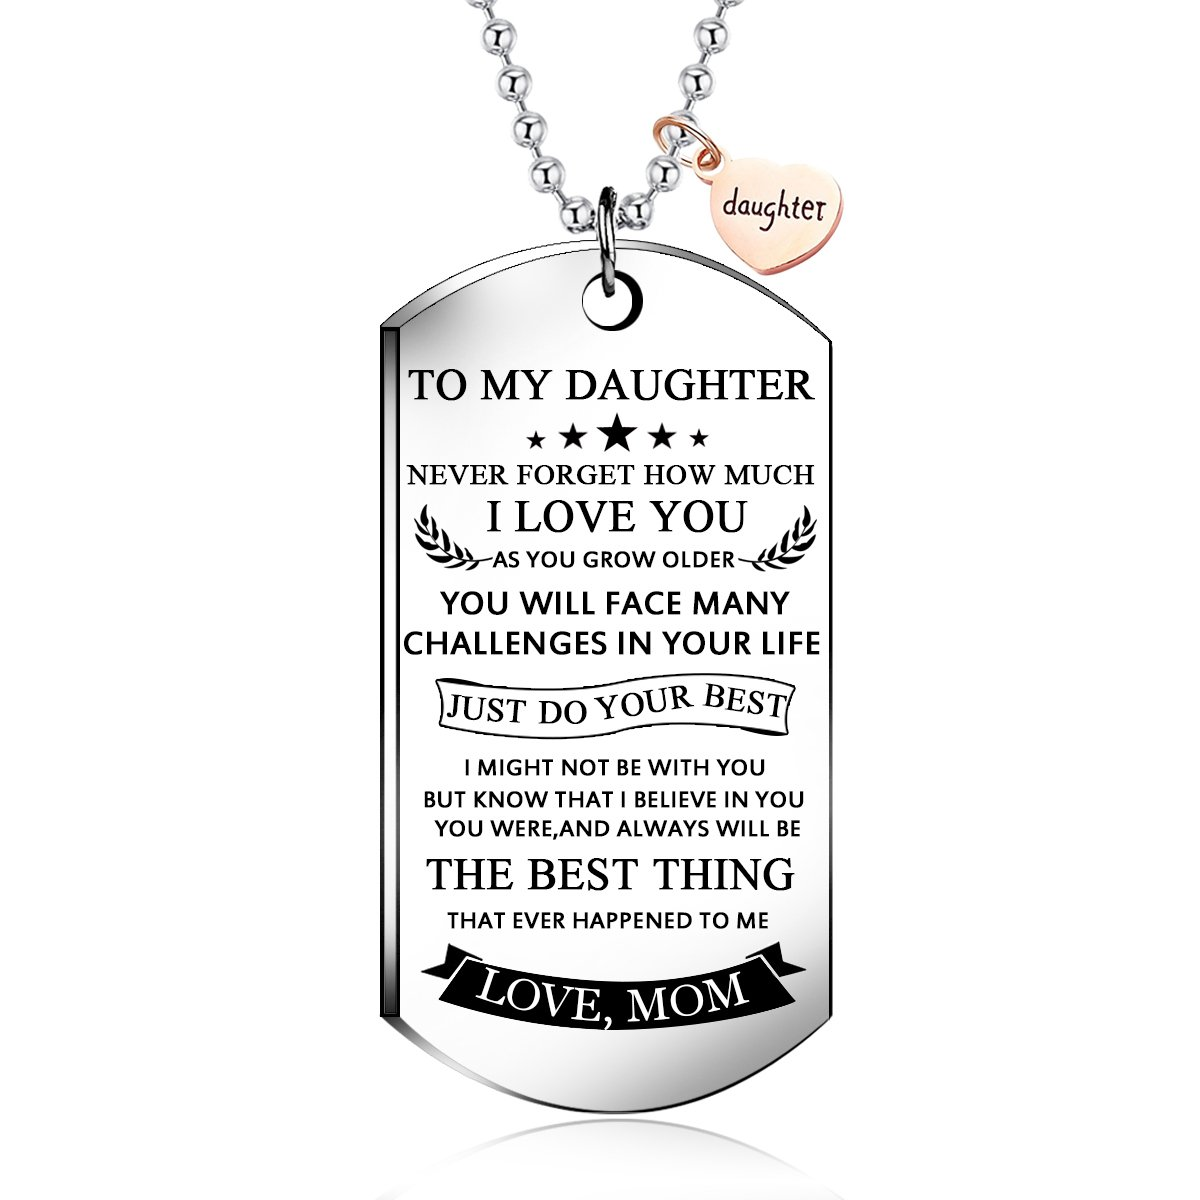 NOVLOVE To my daughter from mom Stainless Steel Dog Tag Letters To my daughter never forget how.love mom Pendant Necklace,Inspirational Gifts For daughter Jewelry